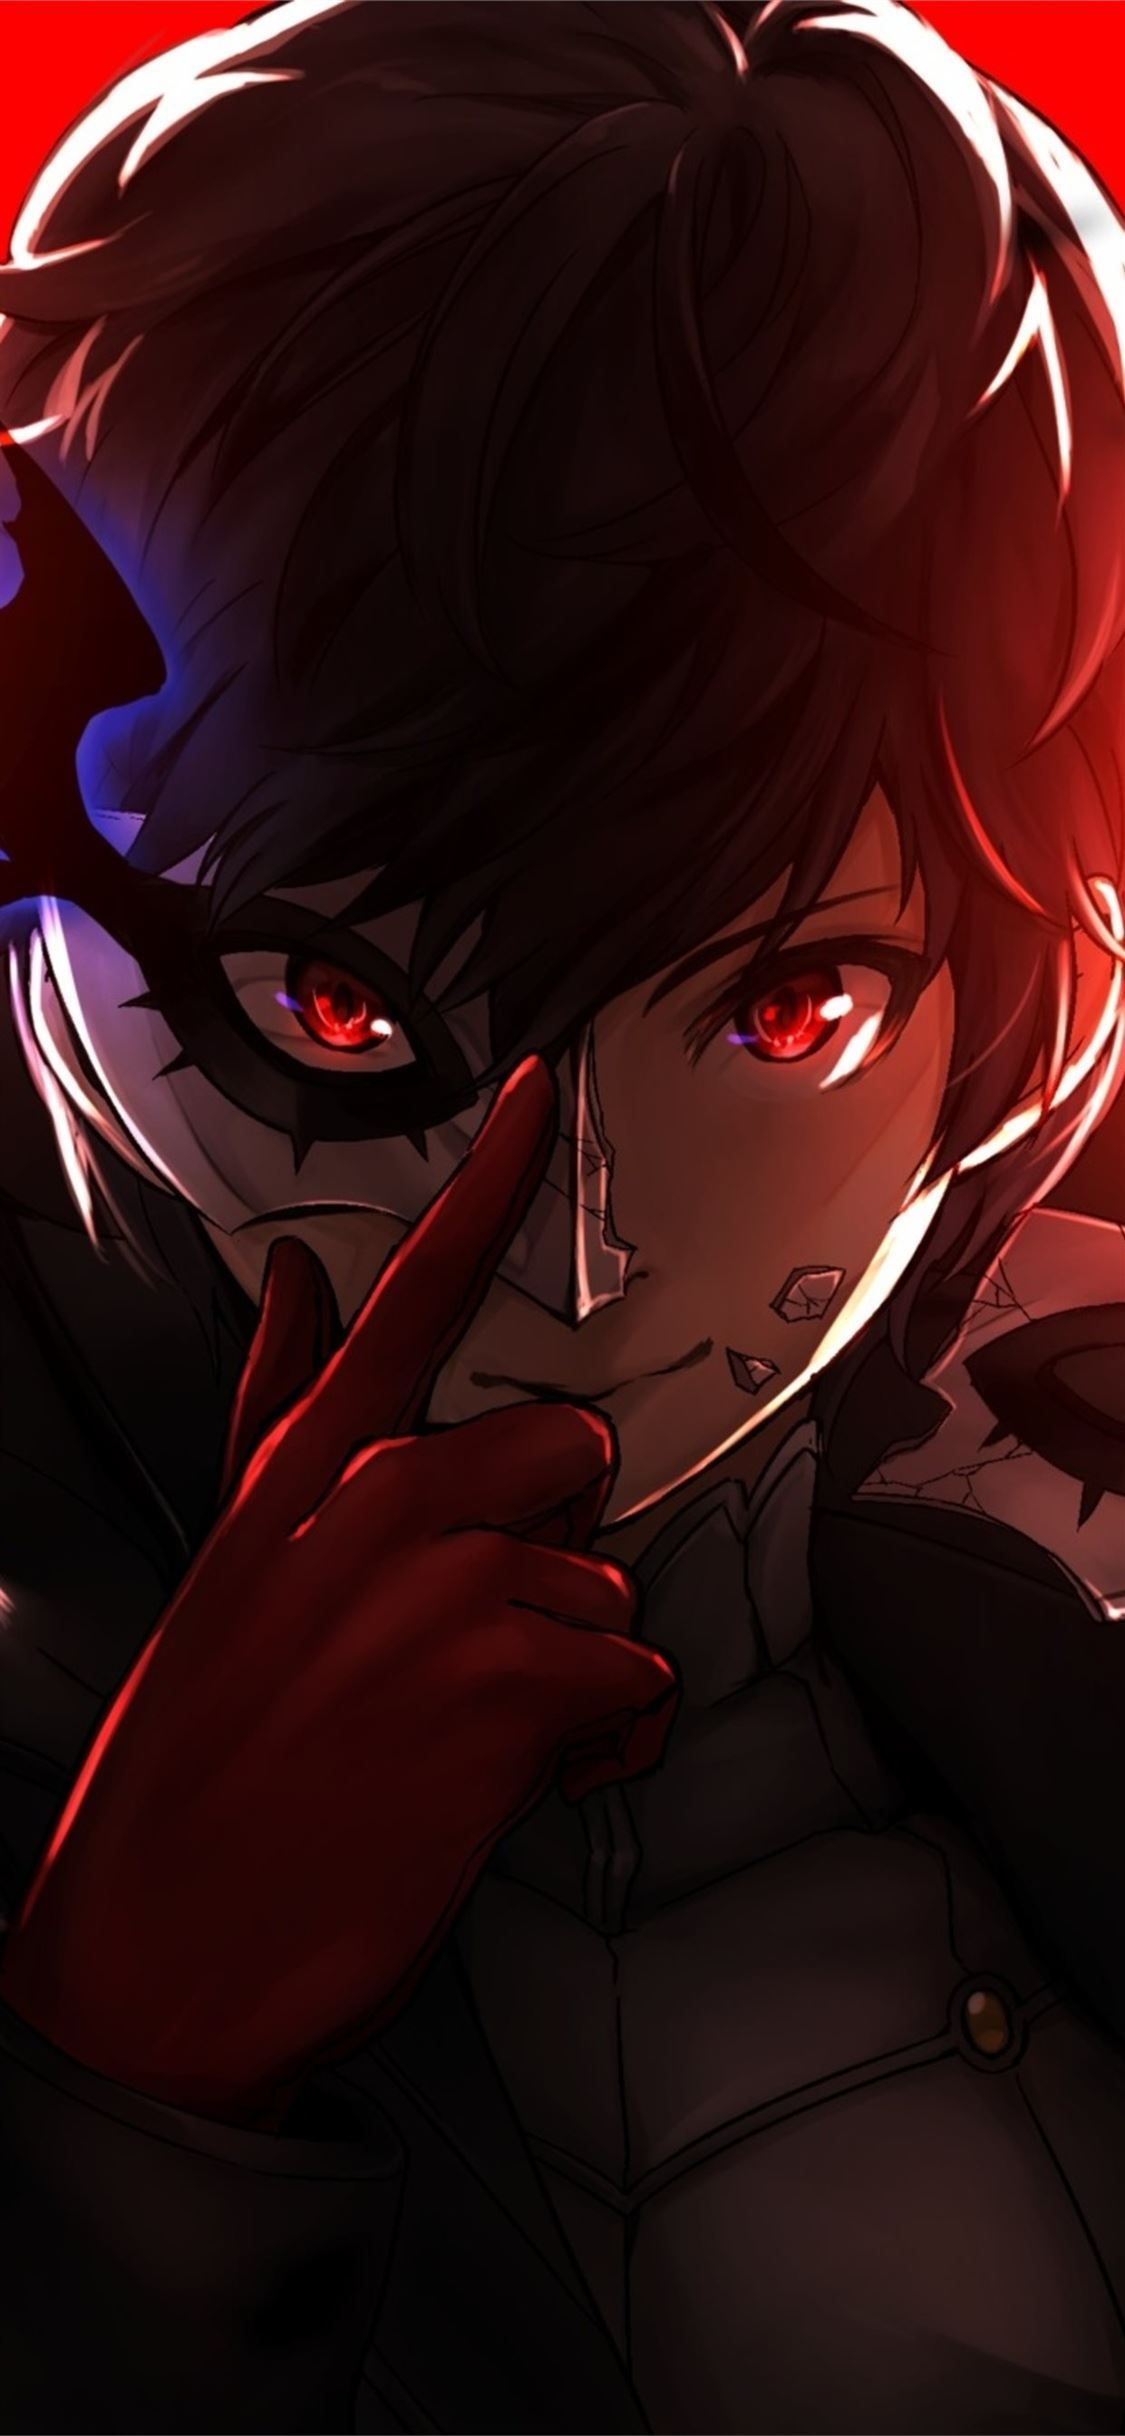 Protagoinst Persona 5 4k Iphone 11 Wallpapers In 2020 Persona 5 Persona Wallpaper